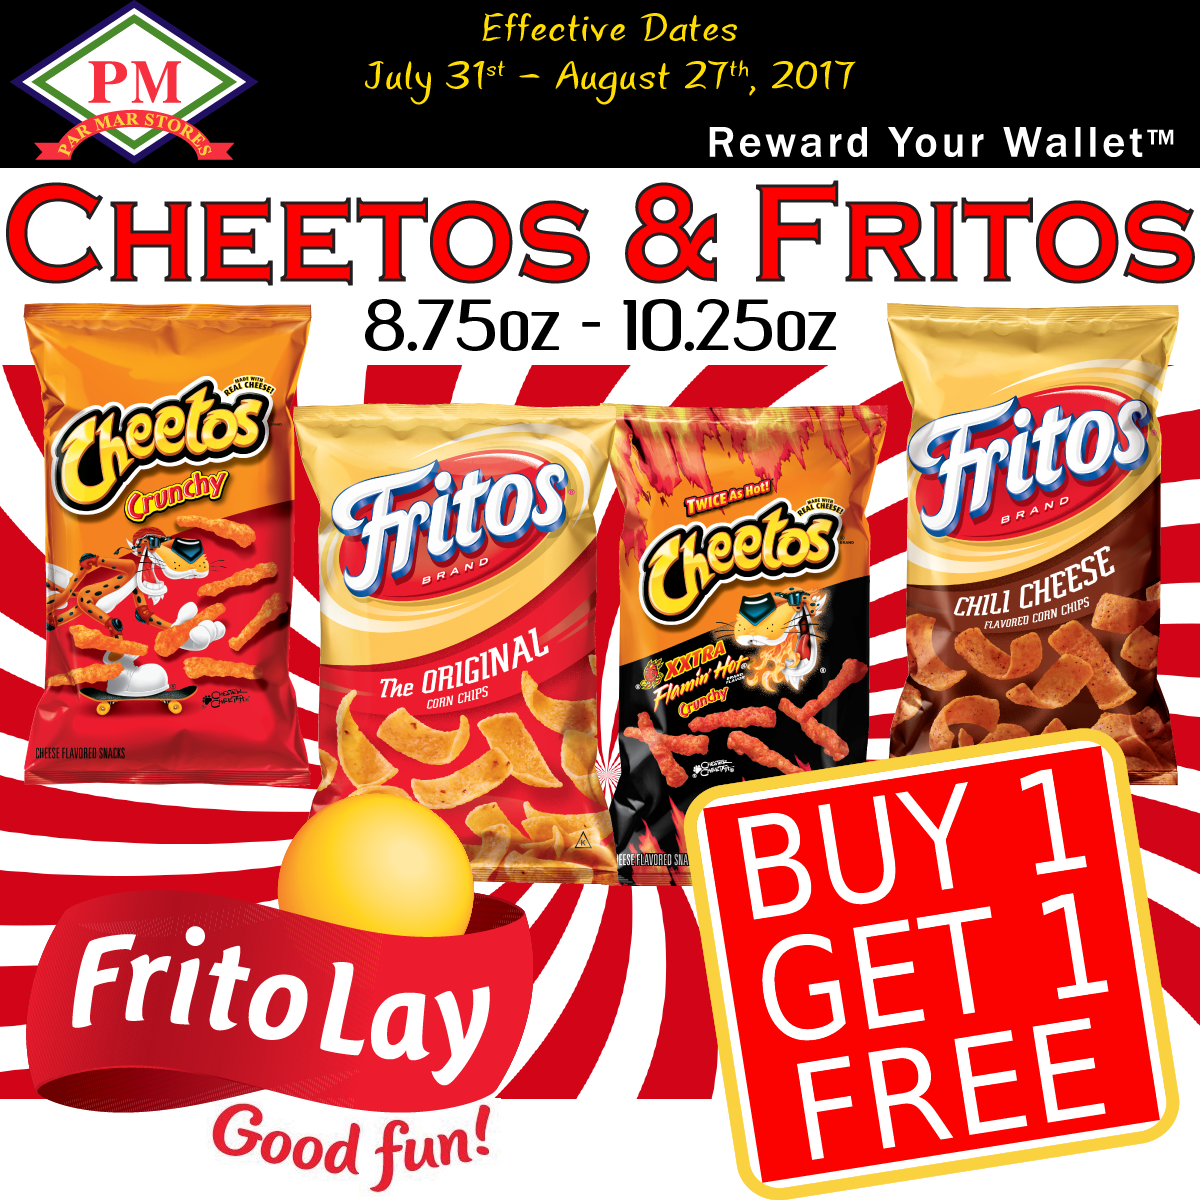 FritoLay exported